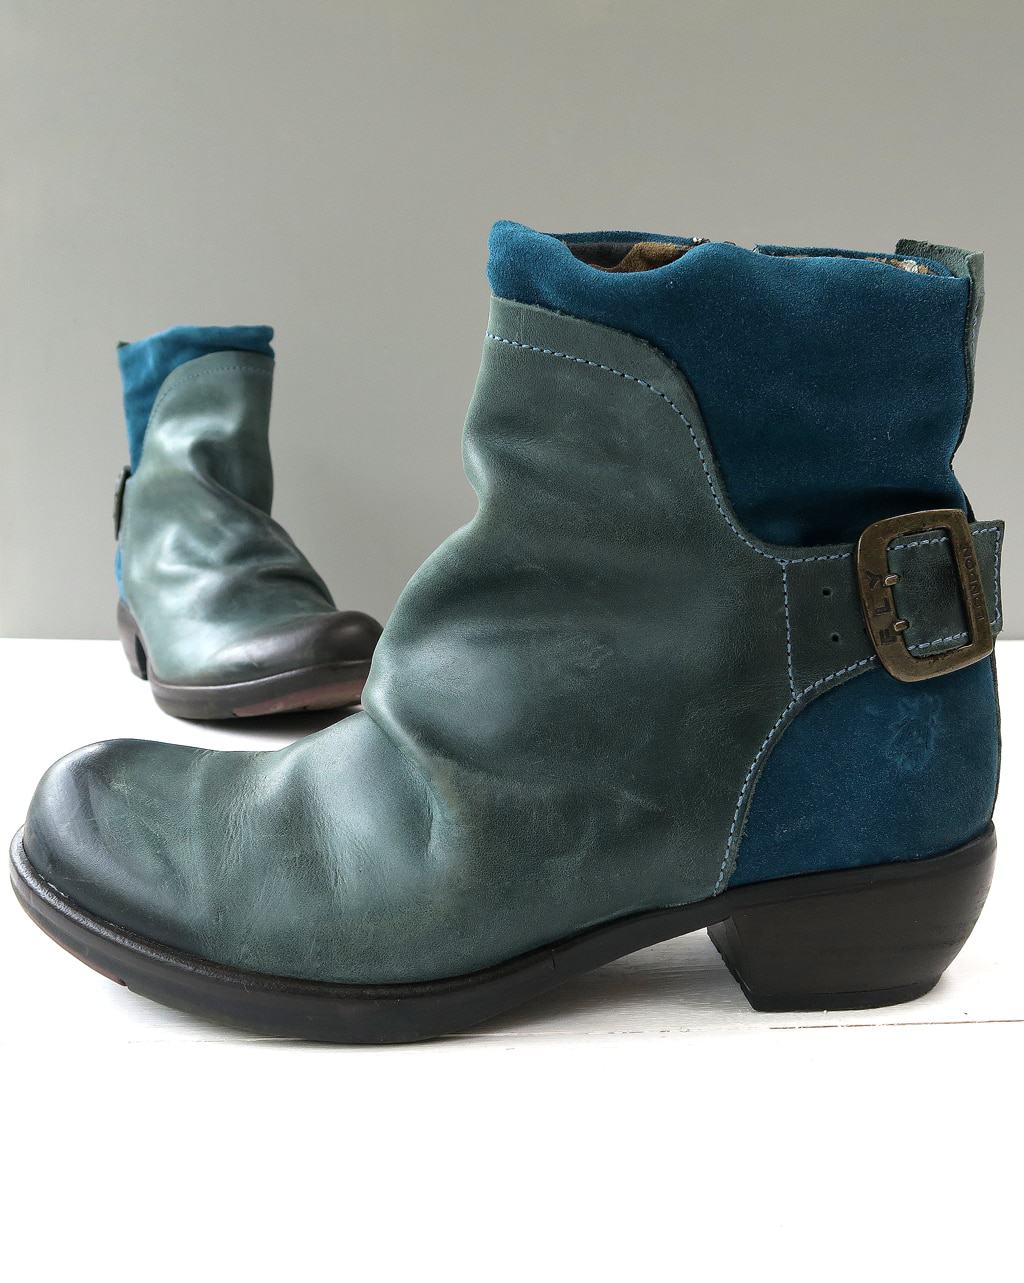 blue-suede-shoes-full